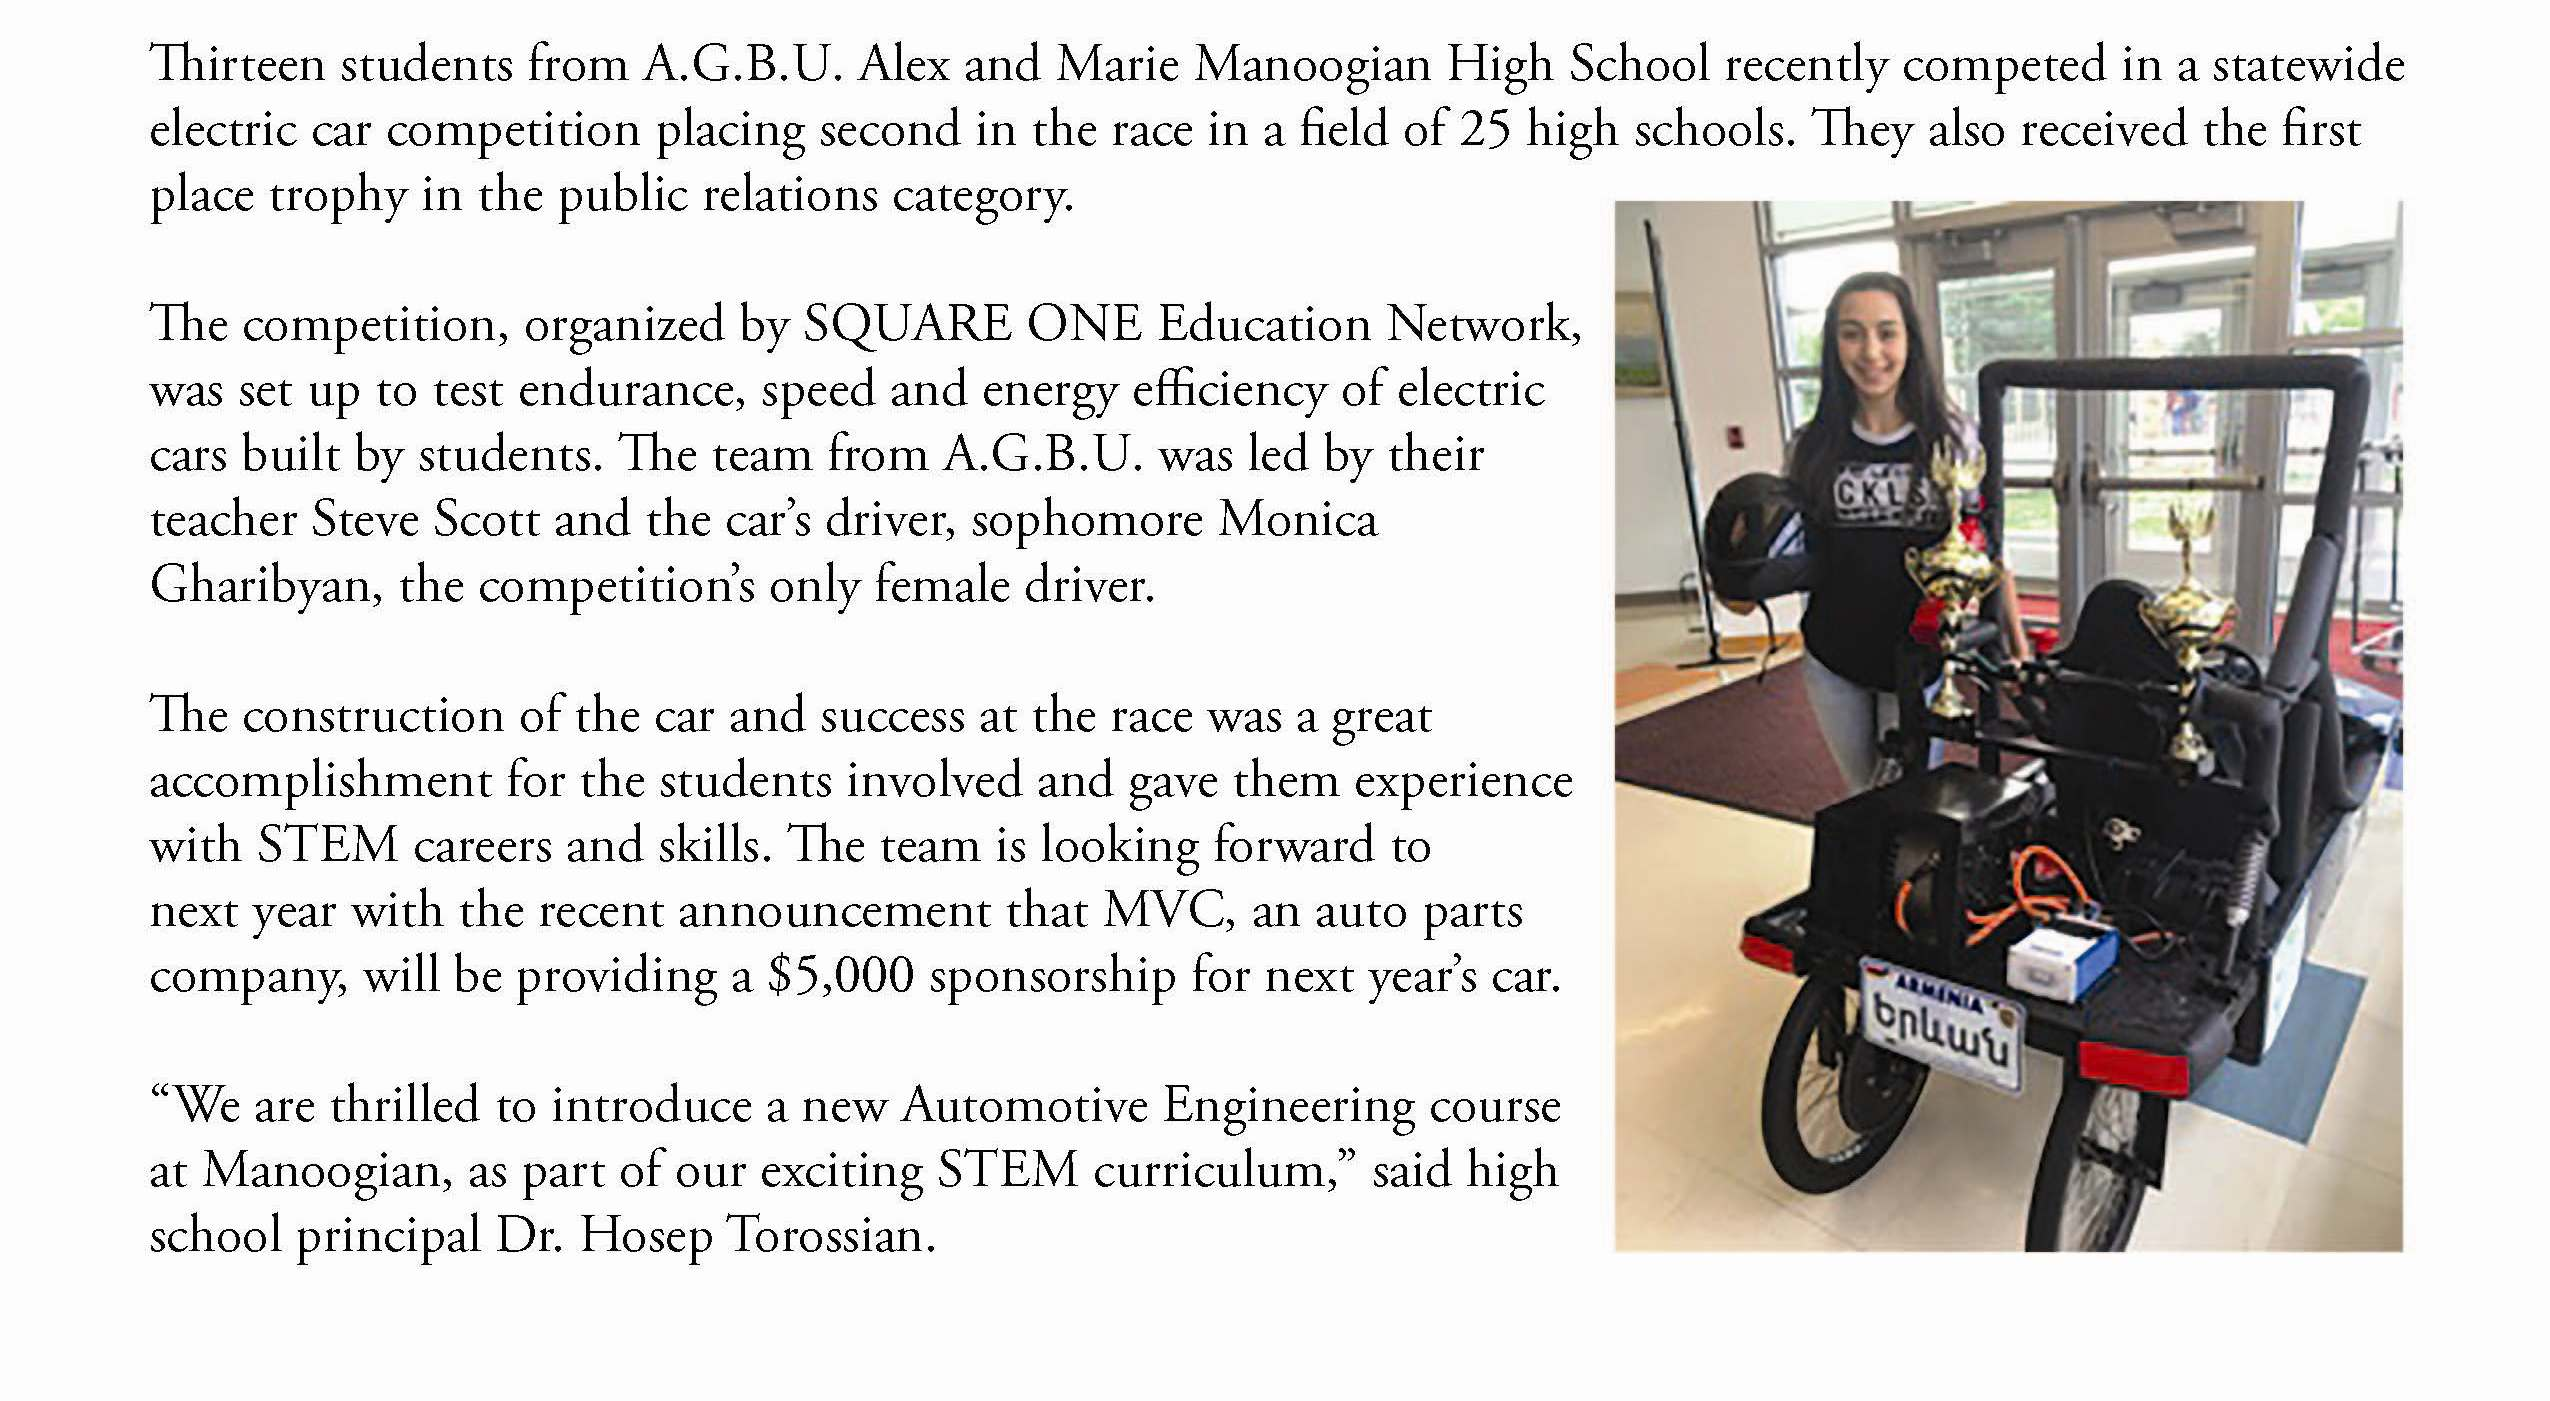 manoogian_school_electric_car2